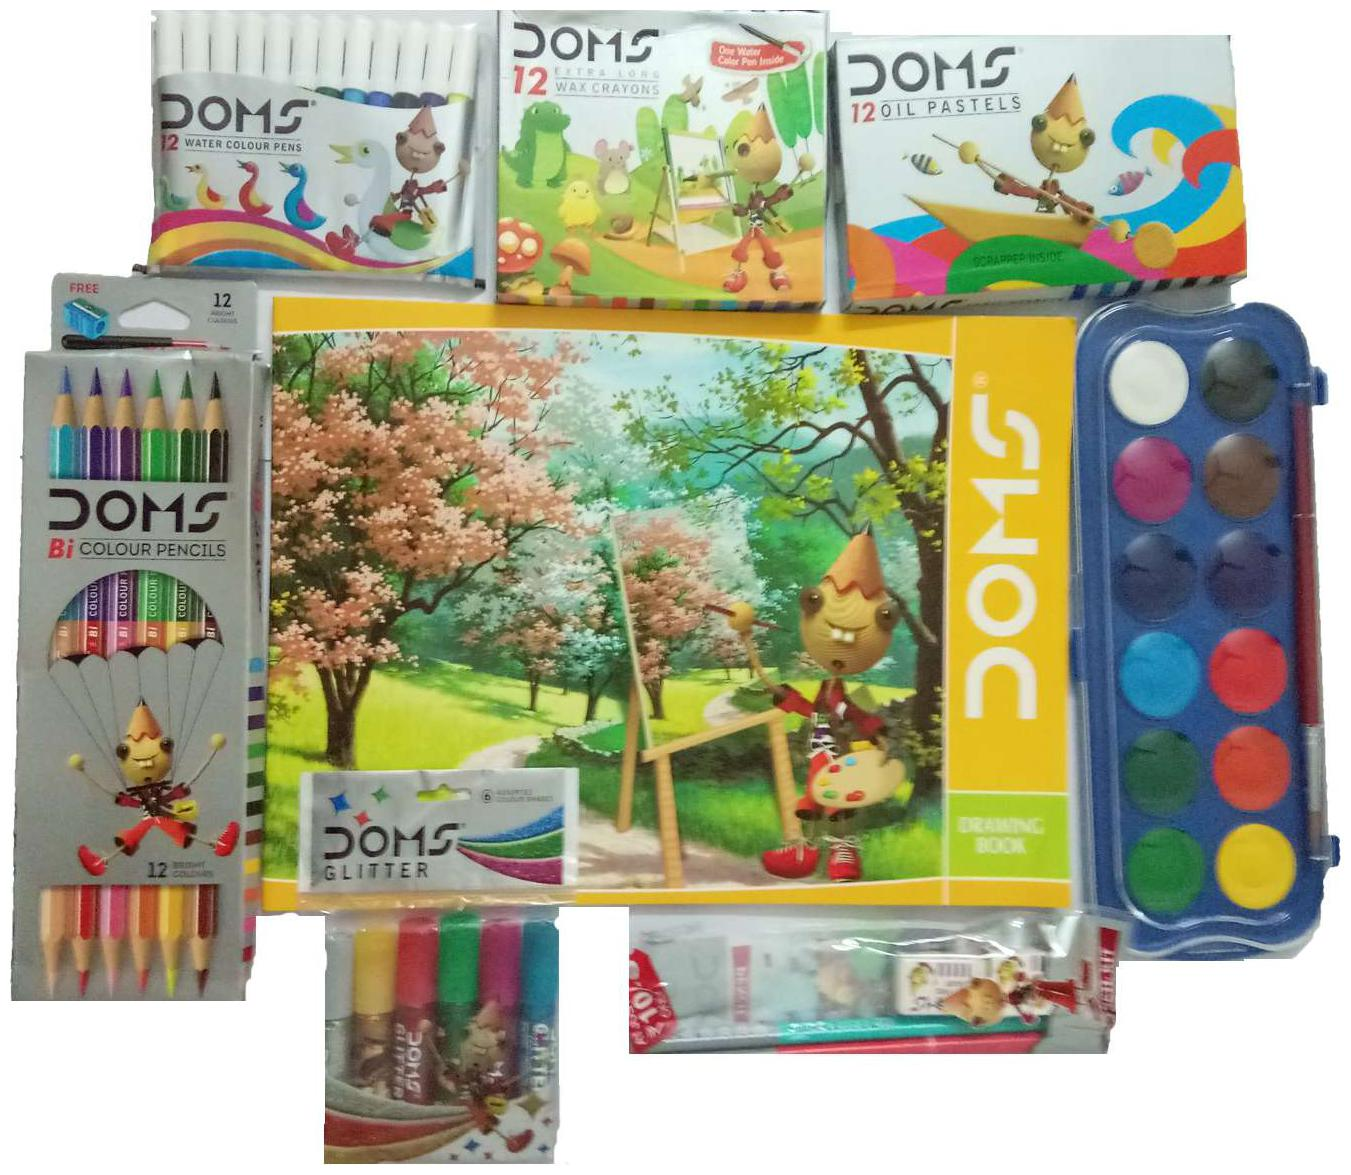 DOMS DRAWING BOOK+DOMS 12 SHADE BI COLOUR PENCILS+DOMS 12 SHADES COLOUR WATER CAKES+DOMS 12 OIL PASTELS+DOMS 12 EXTRALONG WAX CRAYONS+DOMS 6 GLITTERS+